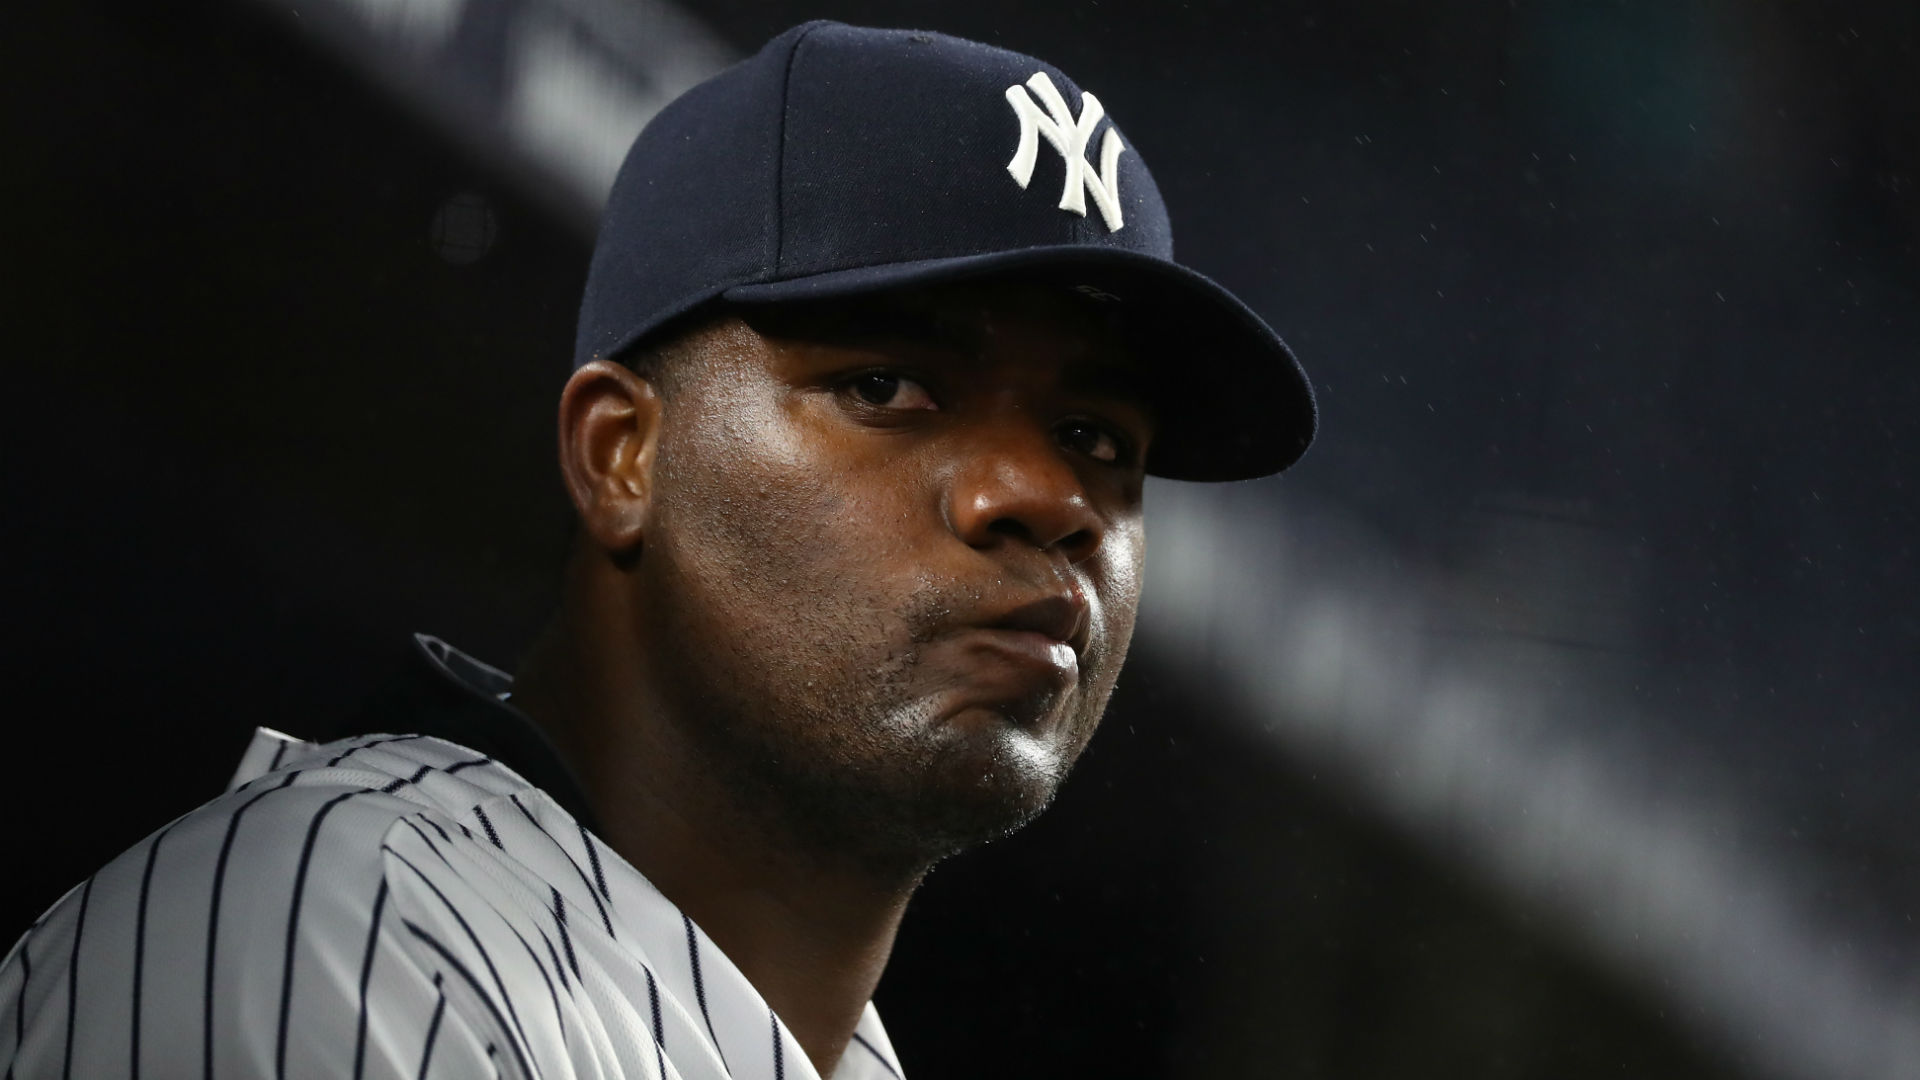 Yankees' Pineda Has Partial UCL Tear, May Need Tommy John Surgery